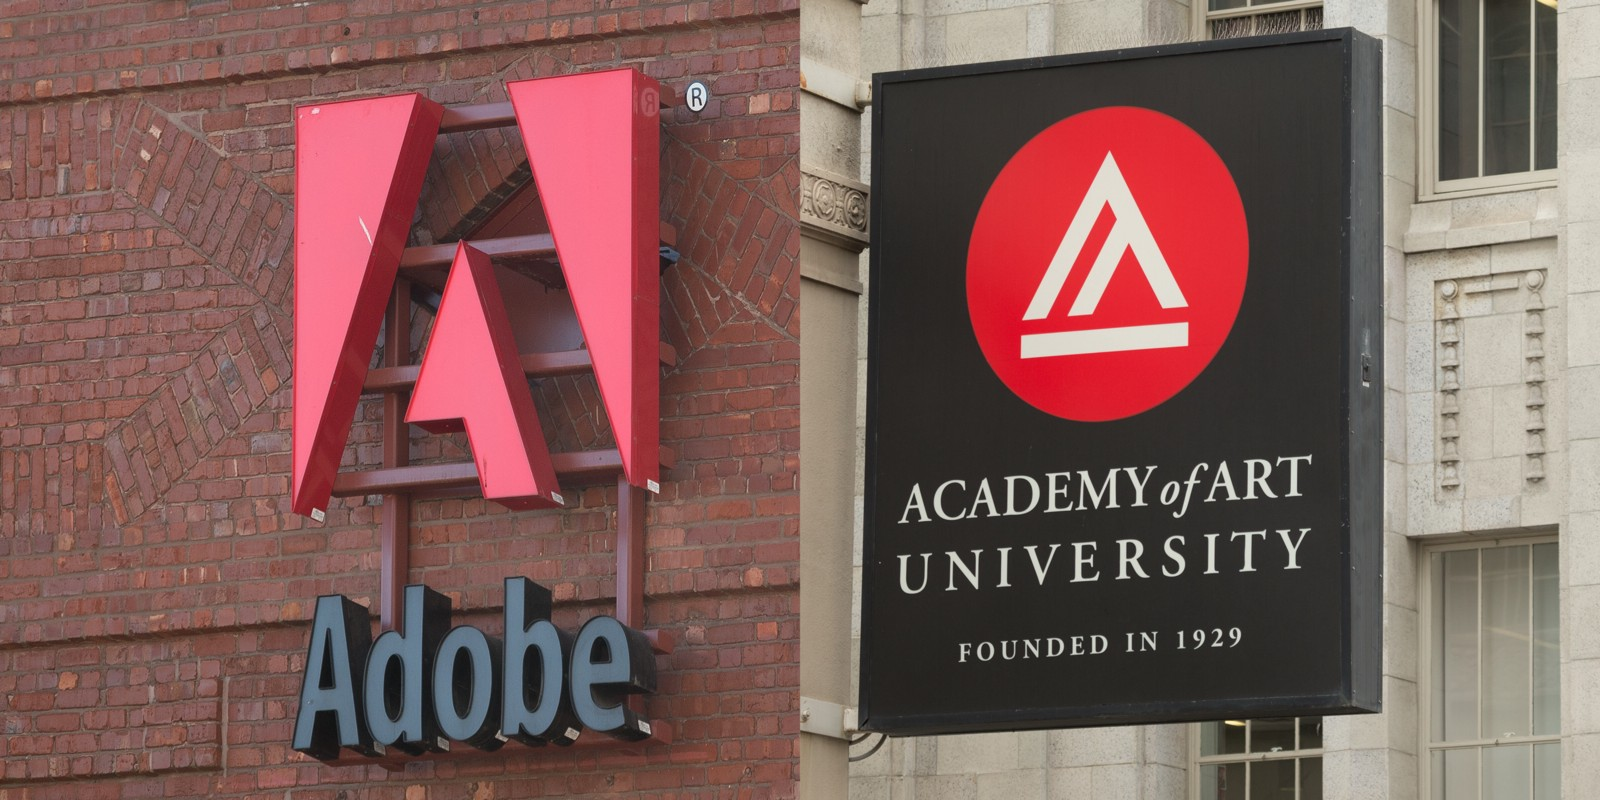 Academy Of Art Adobe Pissing Off Students The Bold Italic San